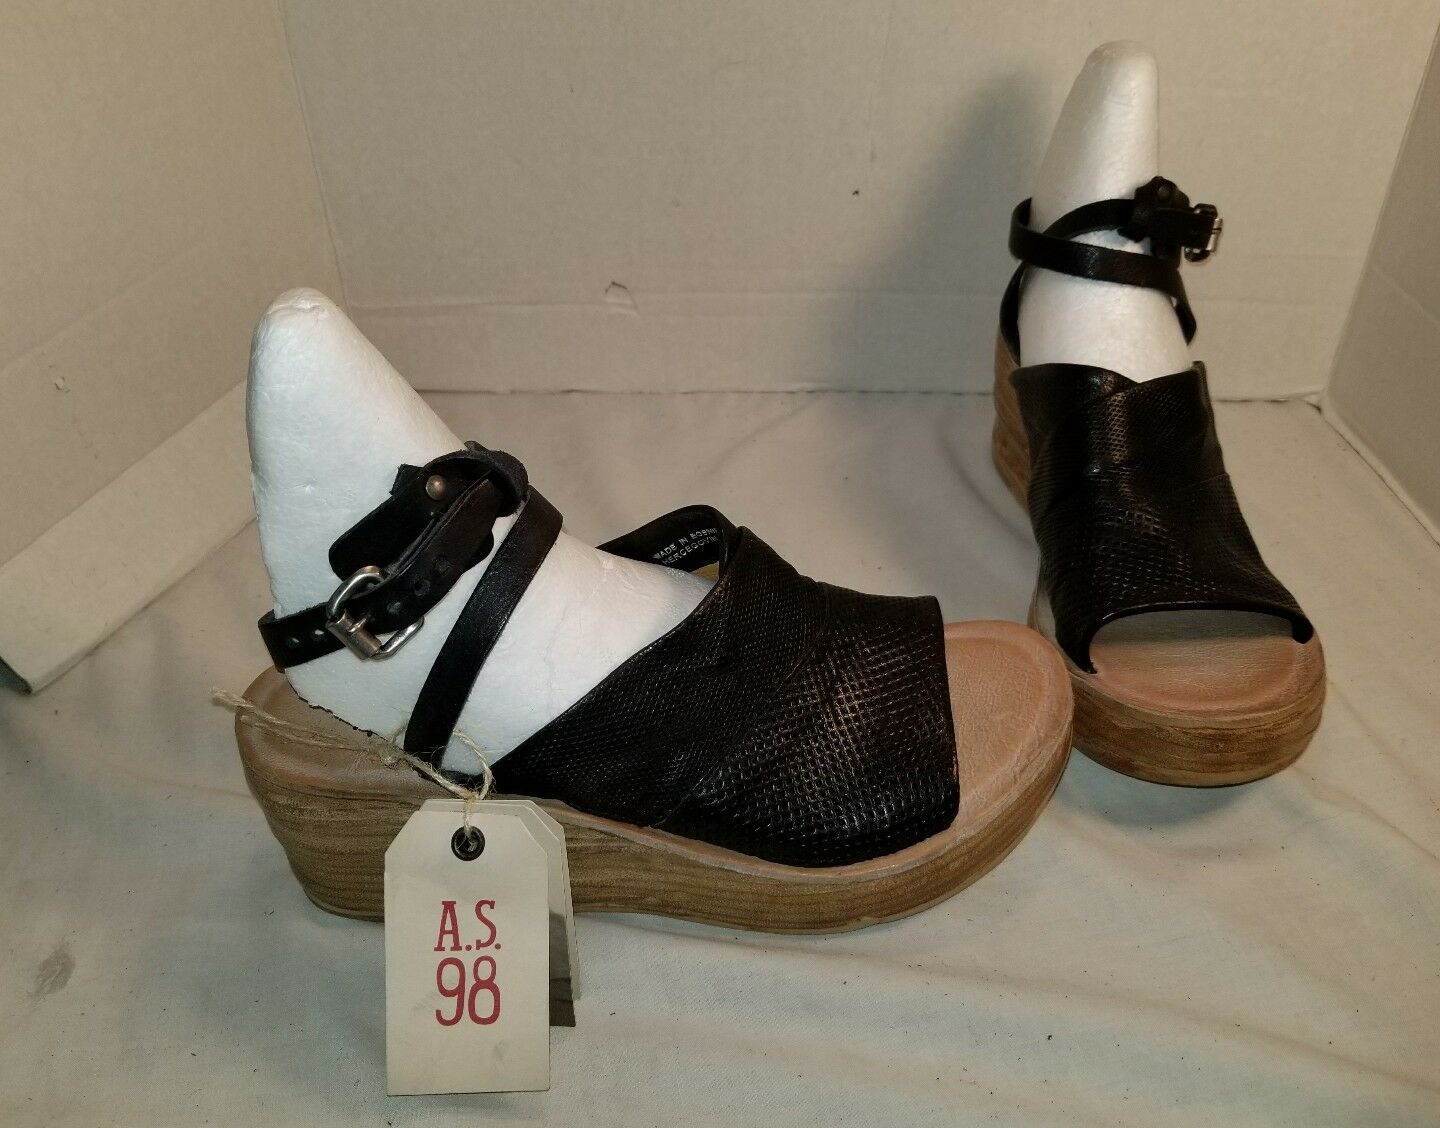 NEW AS 98 NIALL BLACK LEATHER PLATFORM WEDGE SANDALS 10.5  11 EUR 41